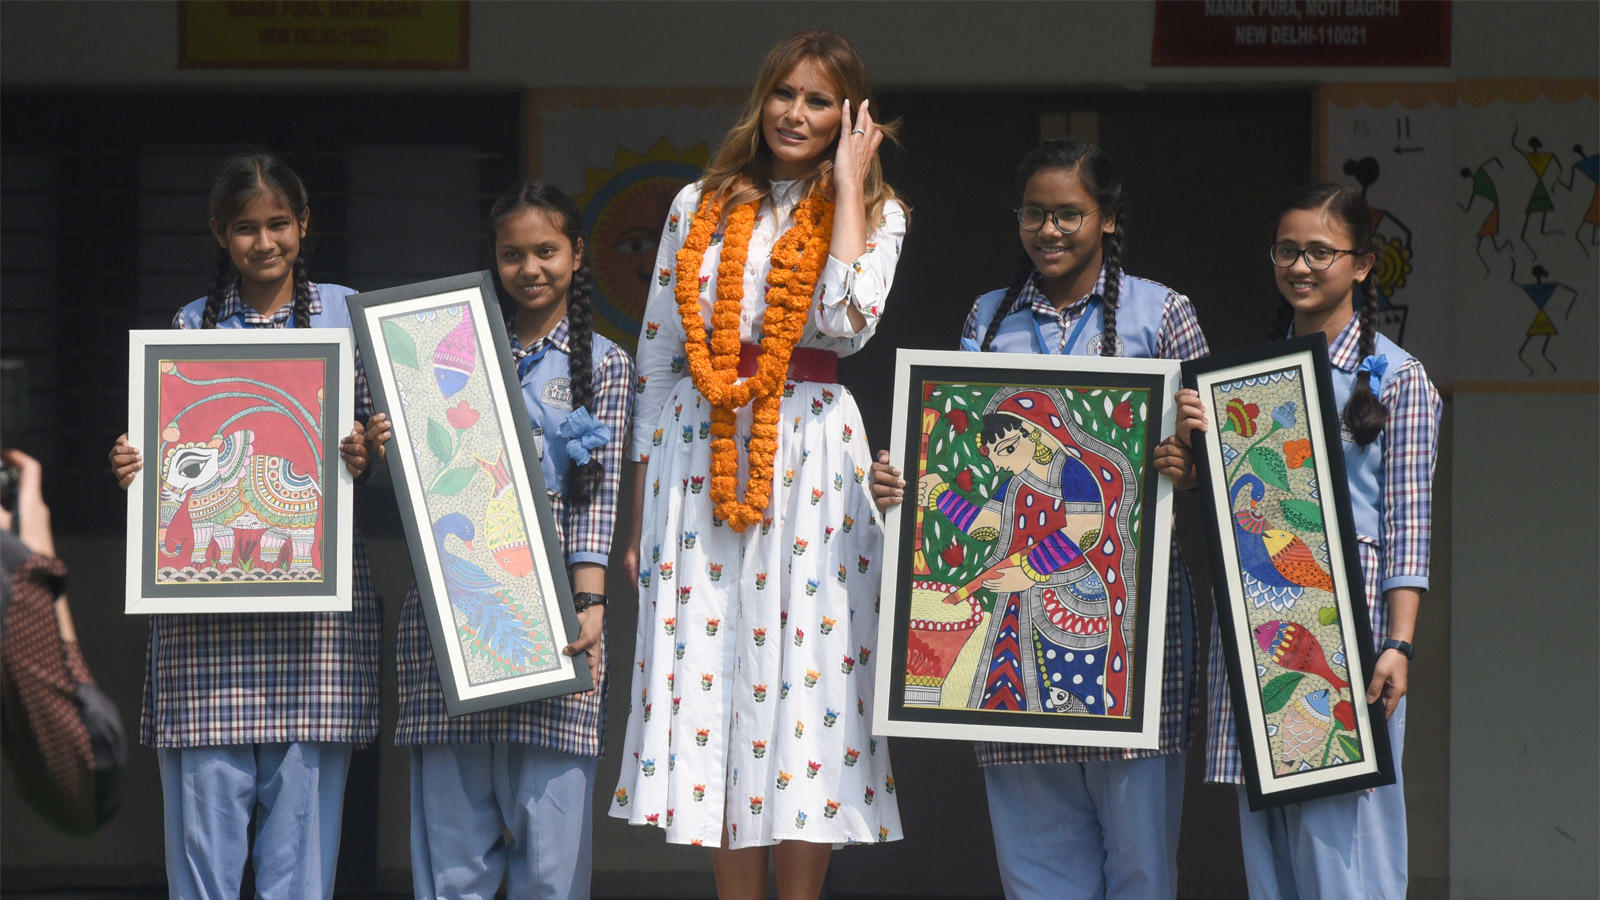 school-children-gift-madhubani-paintings-to-first-lady-melania-trump